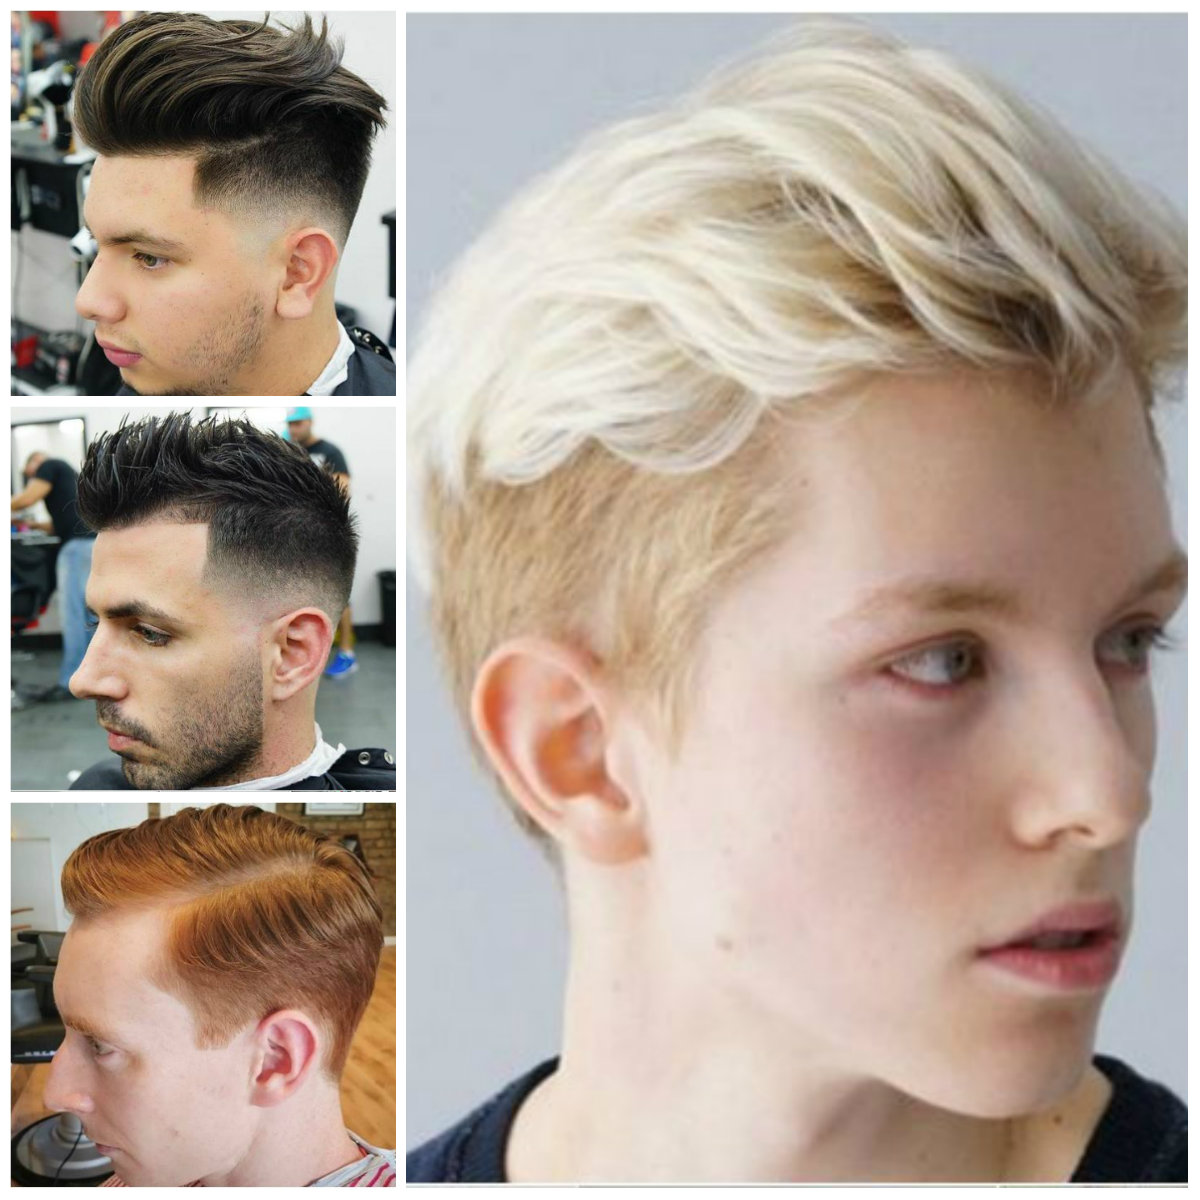 Men's Short Haircuts for 2022